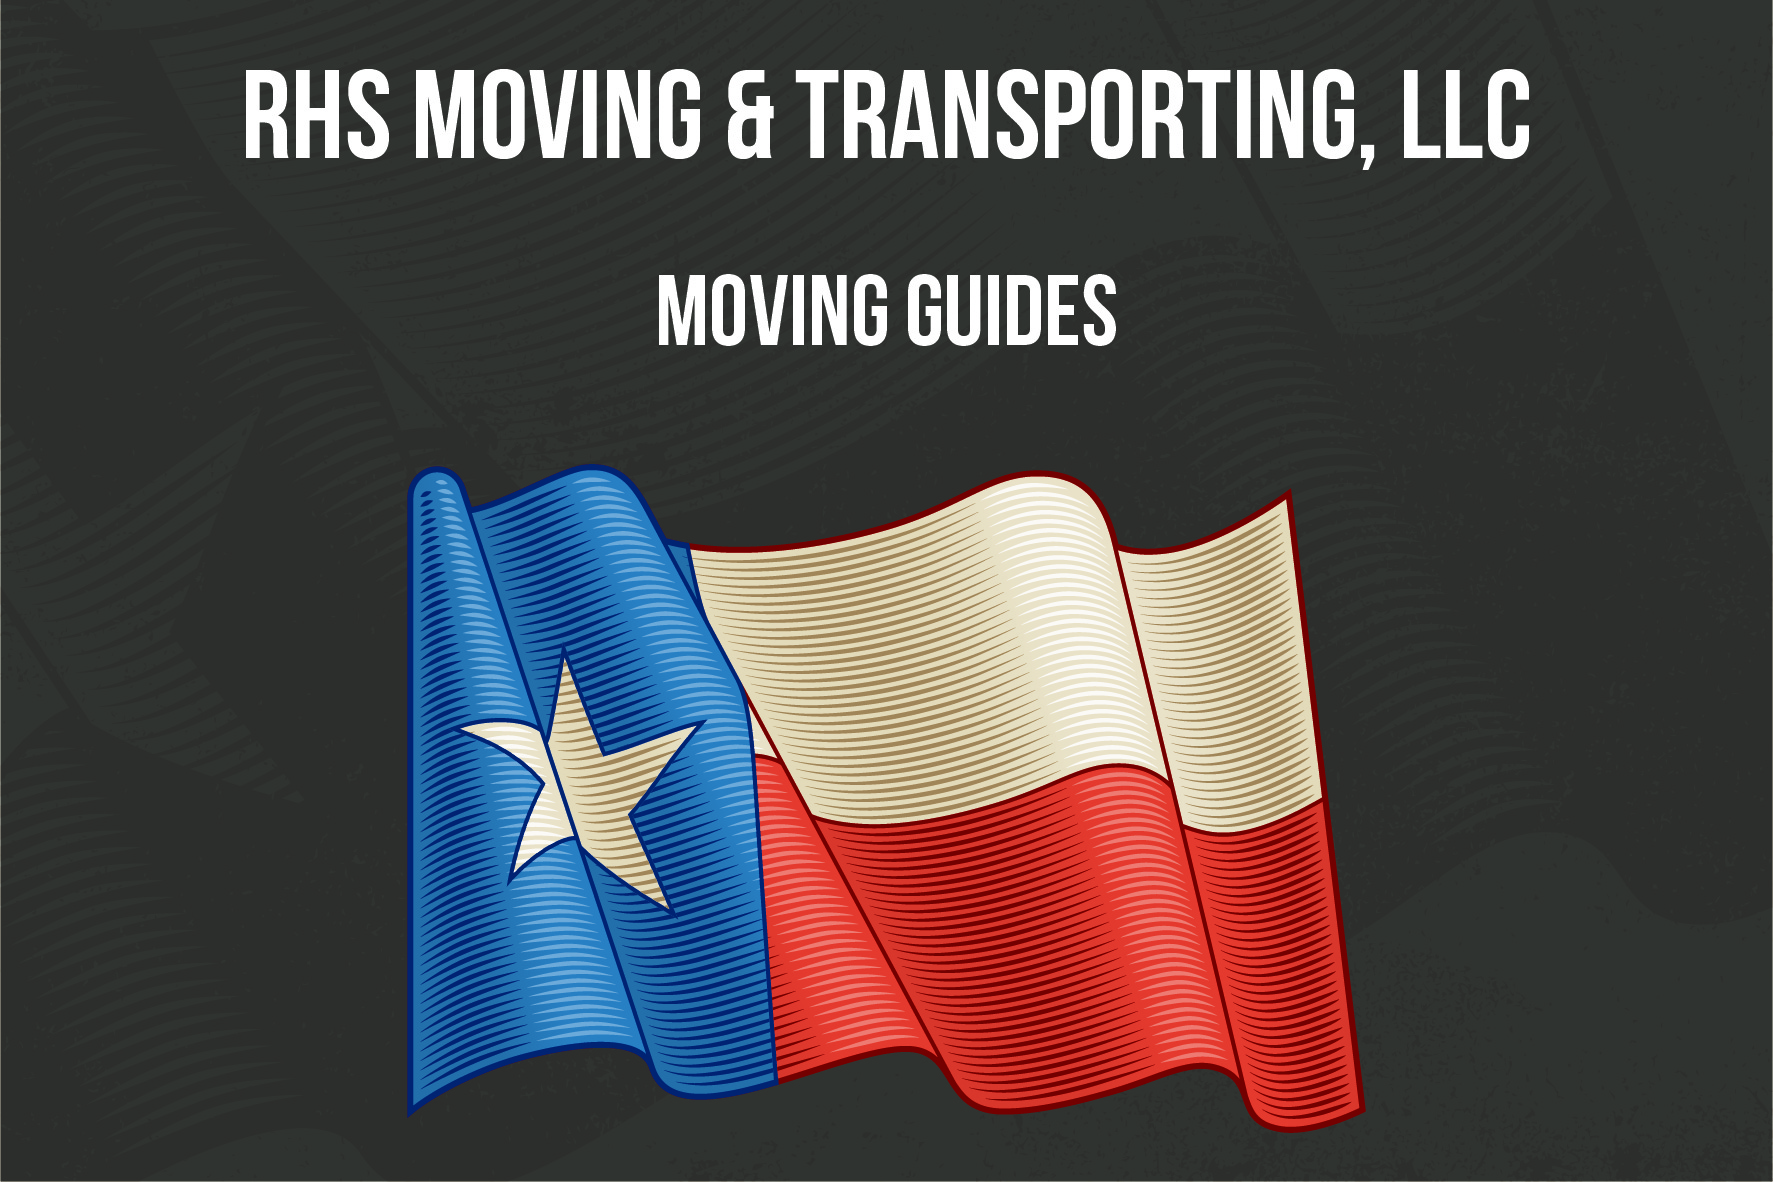 Kyle TX Auto Movers: Moving Your Vehicle